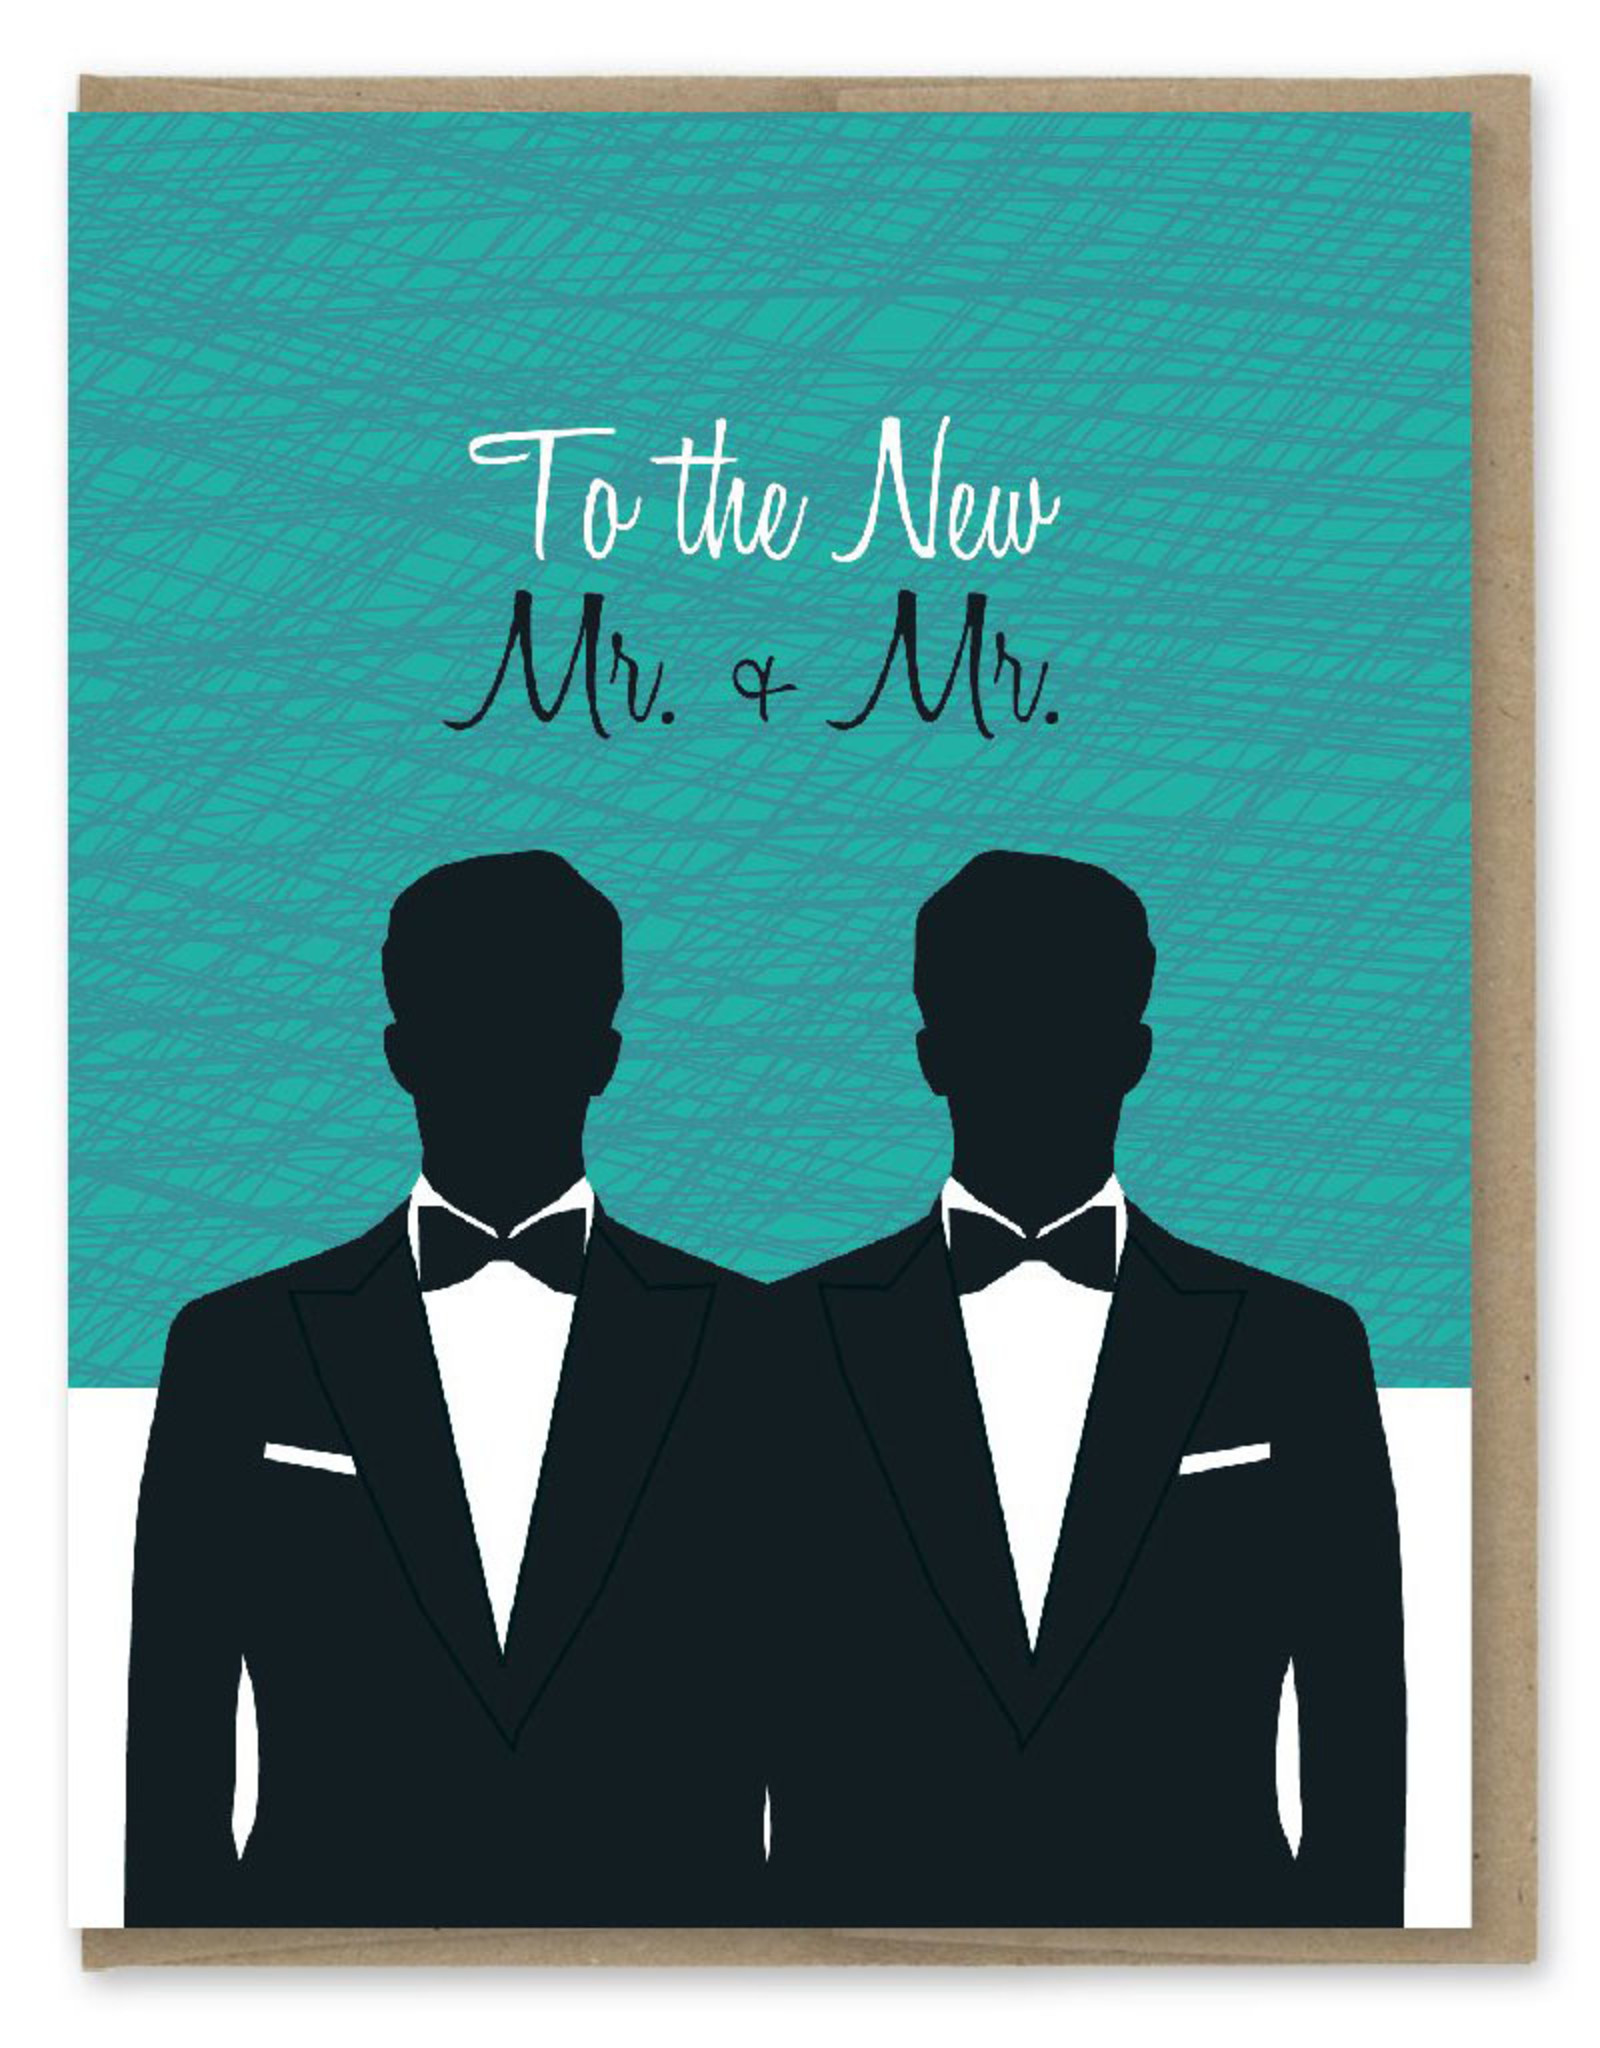 Mr. and Mr. Greeting Card